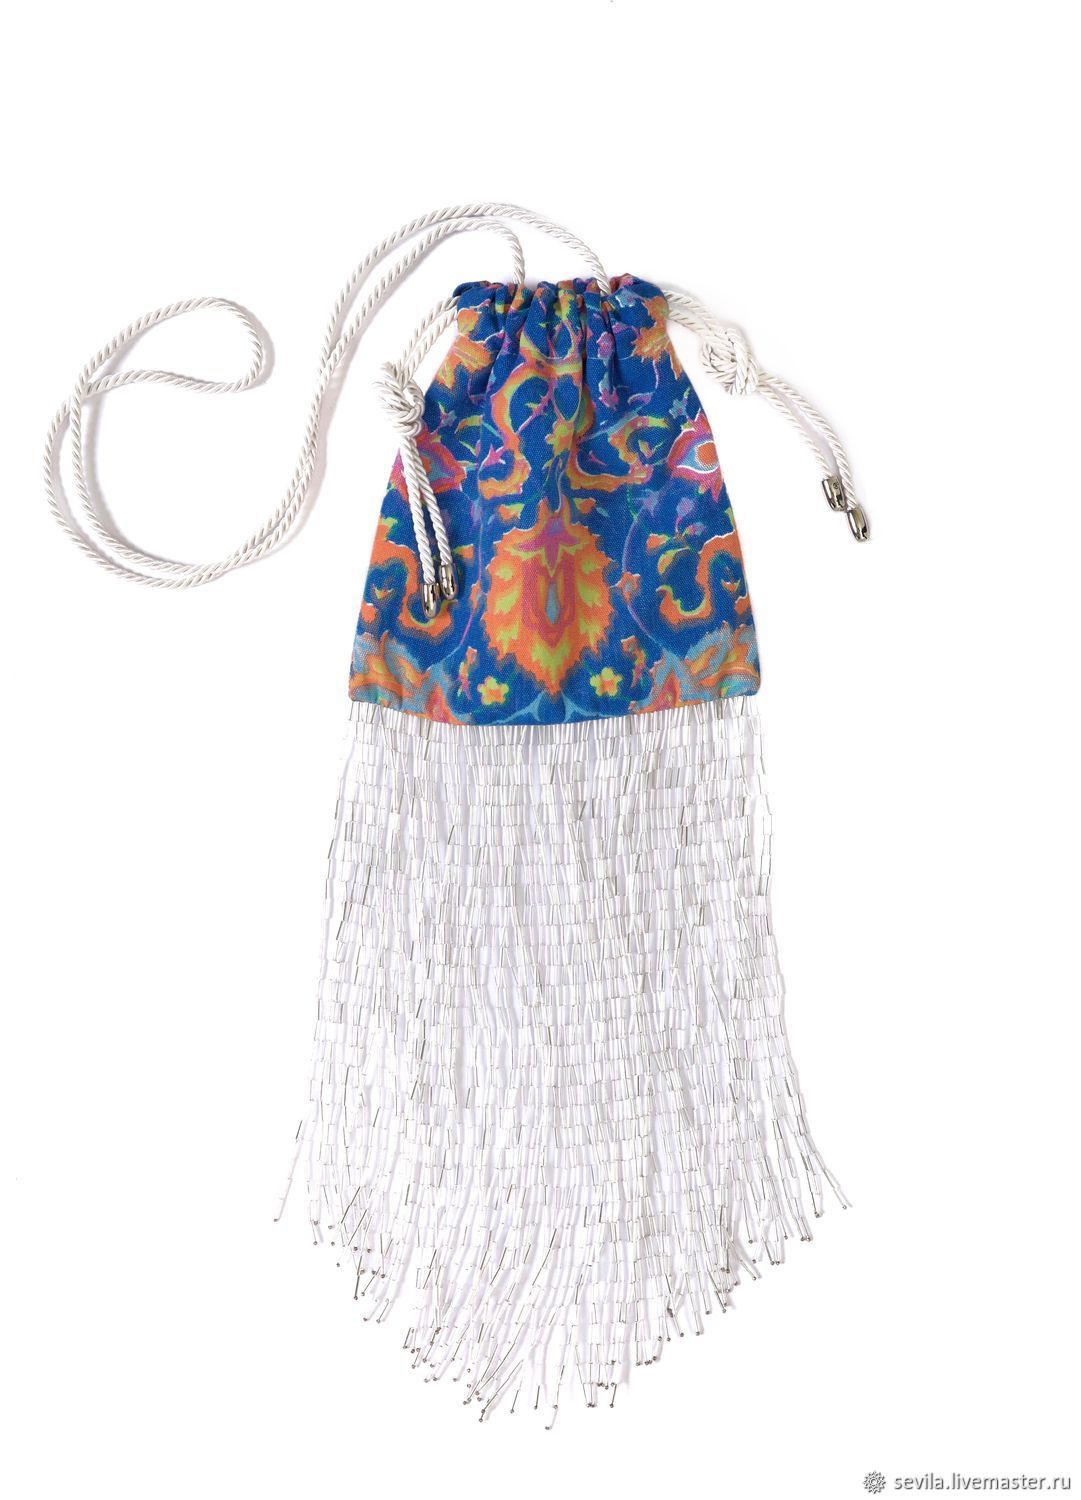 Bag with fringe of glass beads FREEDOM LOVER, Classic Bag, St. Petersburg,  Фото №1